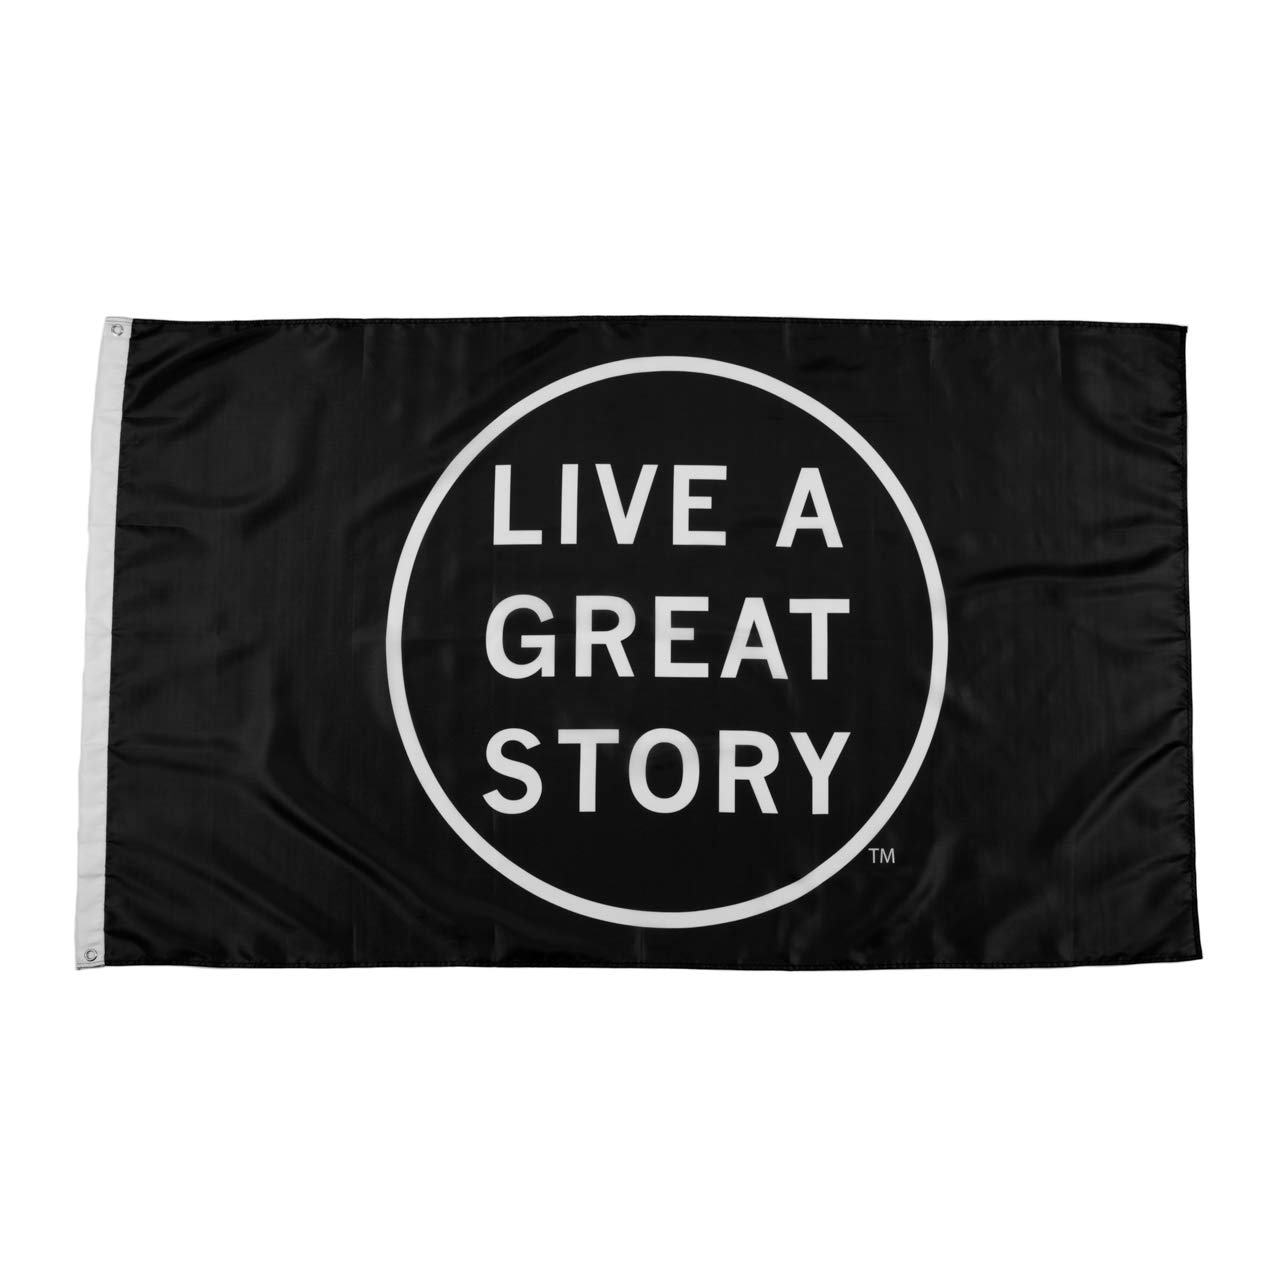 LIVE A GREAT STORY 3x5 Flags - Inspirational Wall Art Dorm Decor - Cool Flags Apartment Decor - Motivational Wall Art - Polyester with Brass Grommets - College Flag Wall Decor - Apartment Decorations by LIVE A GREAT STORY